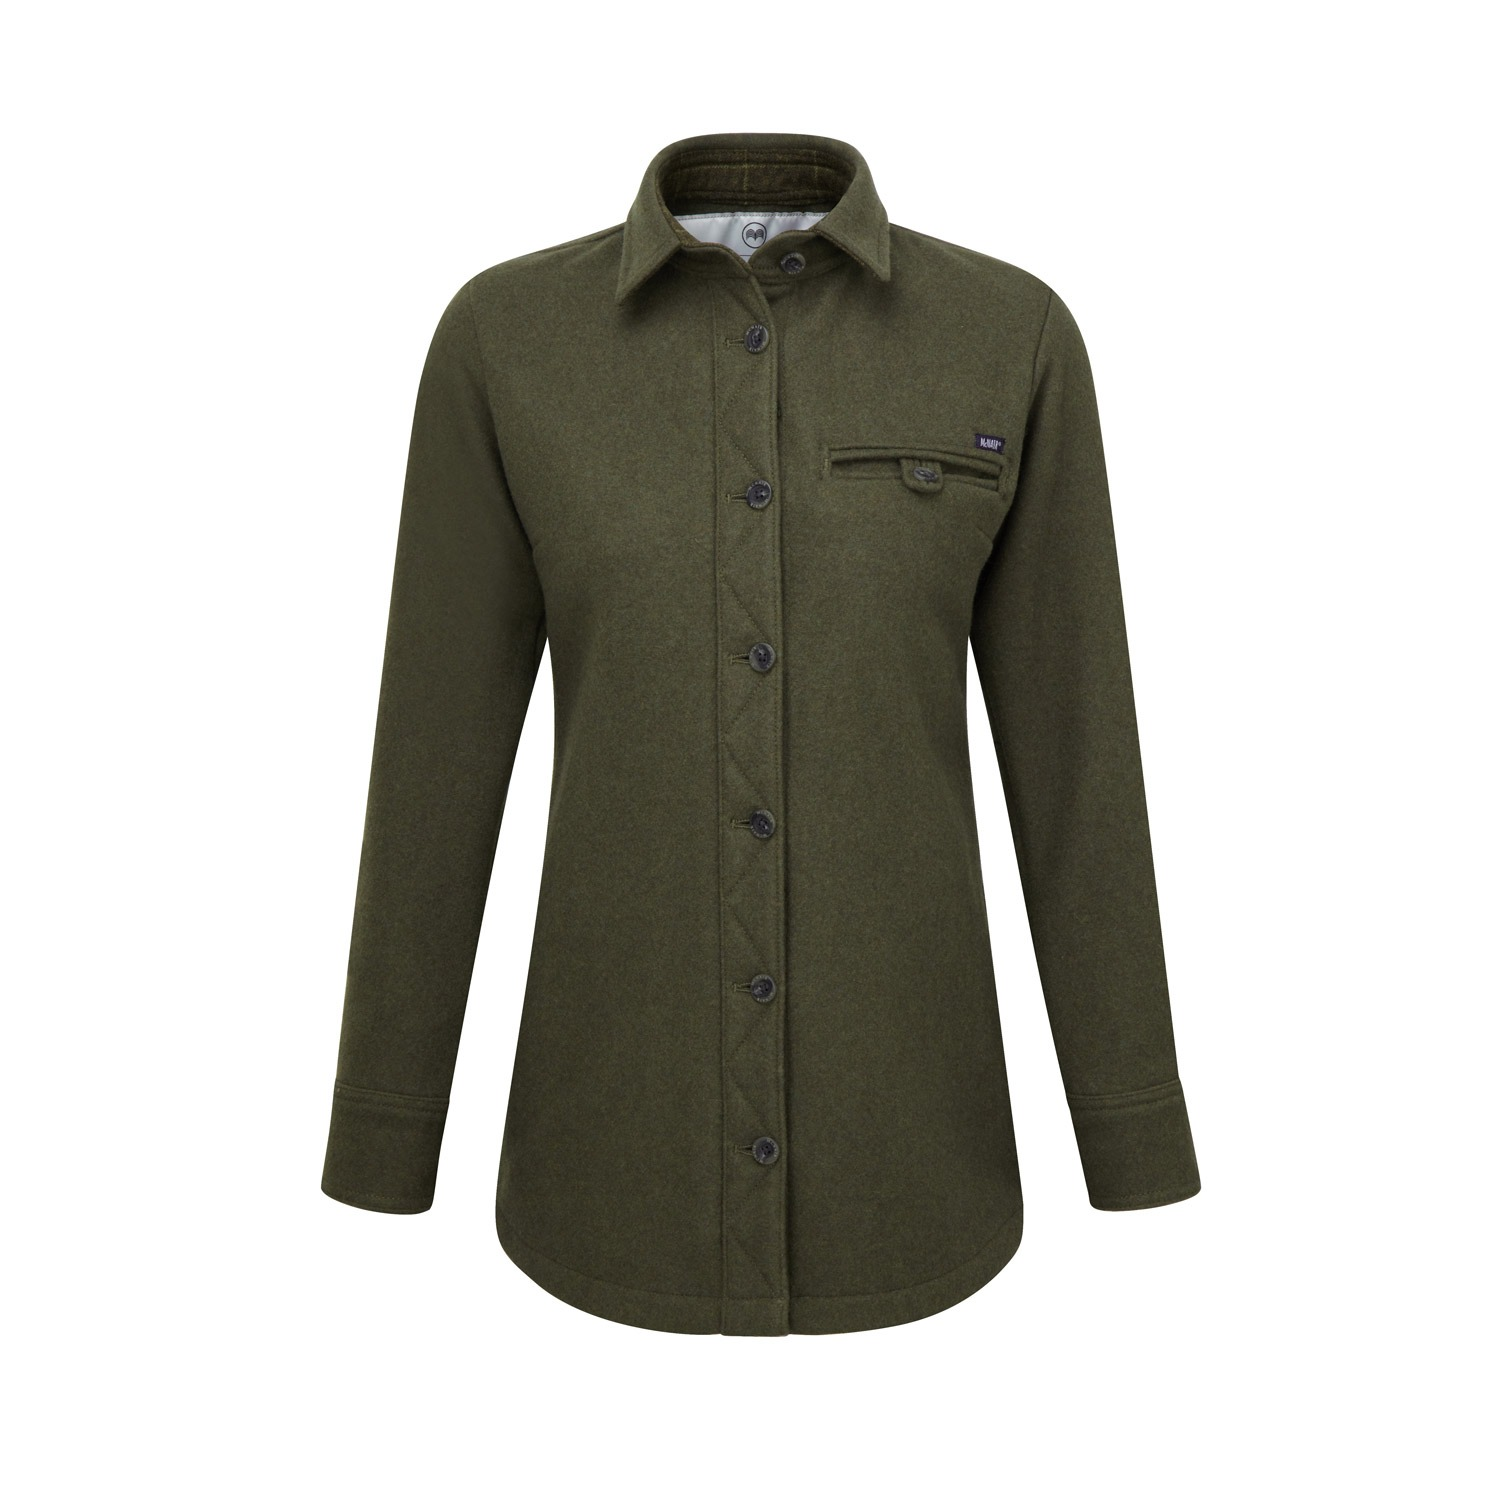 McNair women's heavy weight merino Fell shirt in dark sage